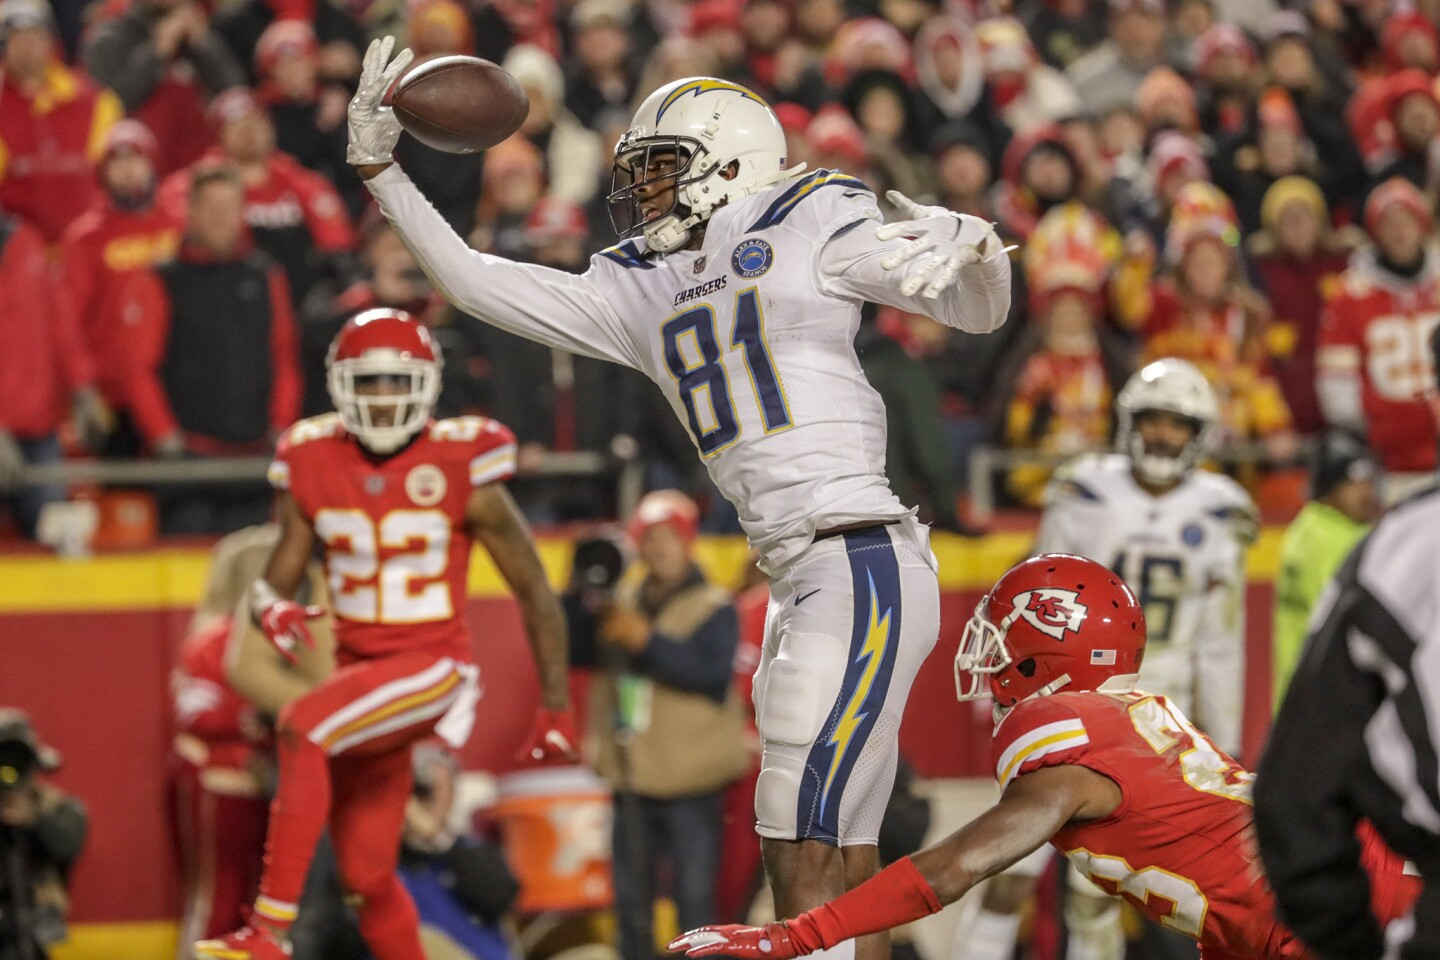 Chargers receiver can't pull in a pass, but Chiefs cornerback Kendall Fuller was flagged for pass interference.